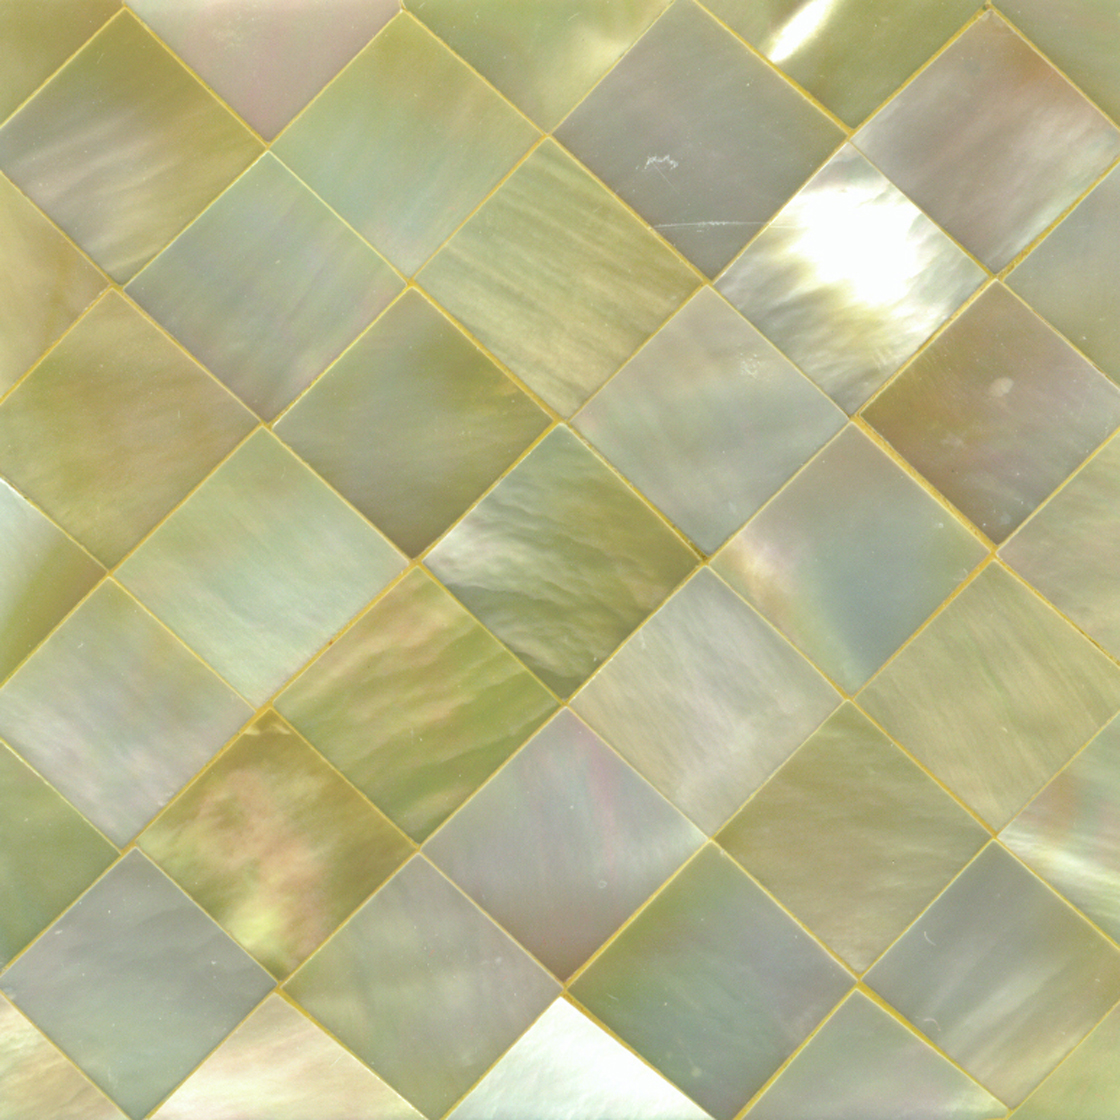 "Gold Mother of Pearl Diamond Shell Tile, 2x2"", 1 Tile"